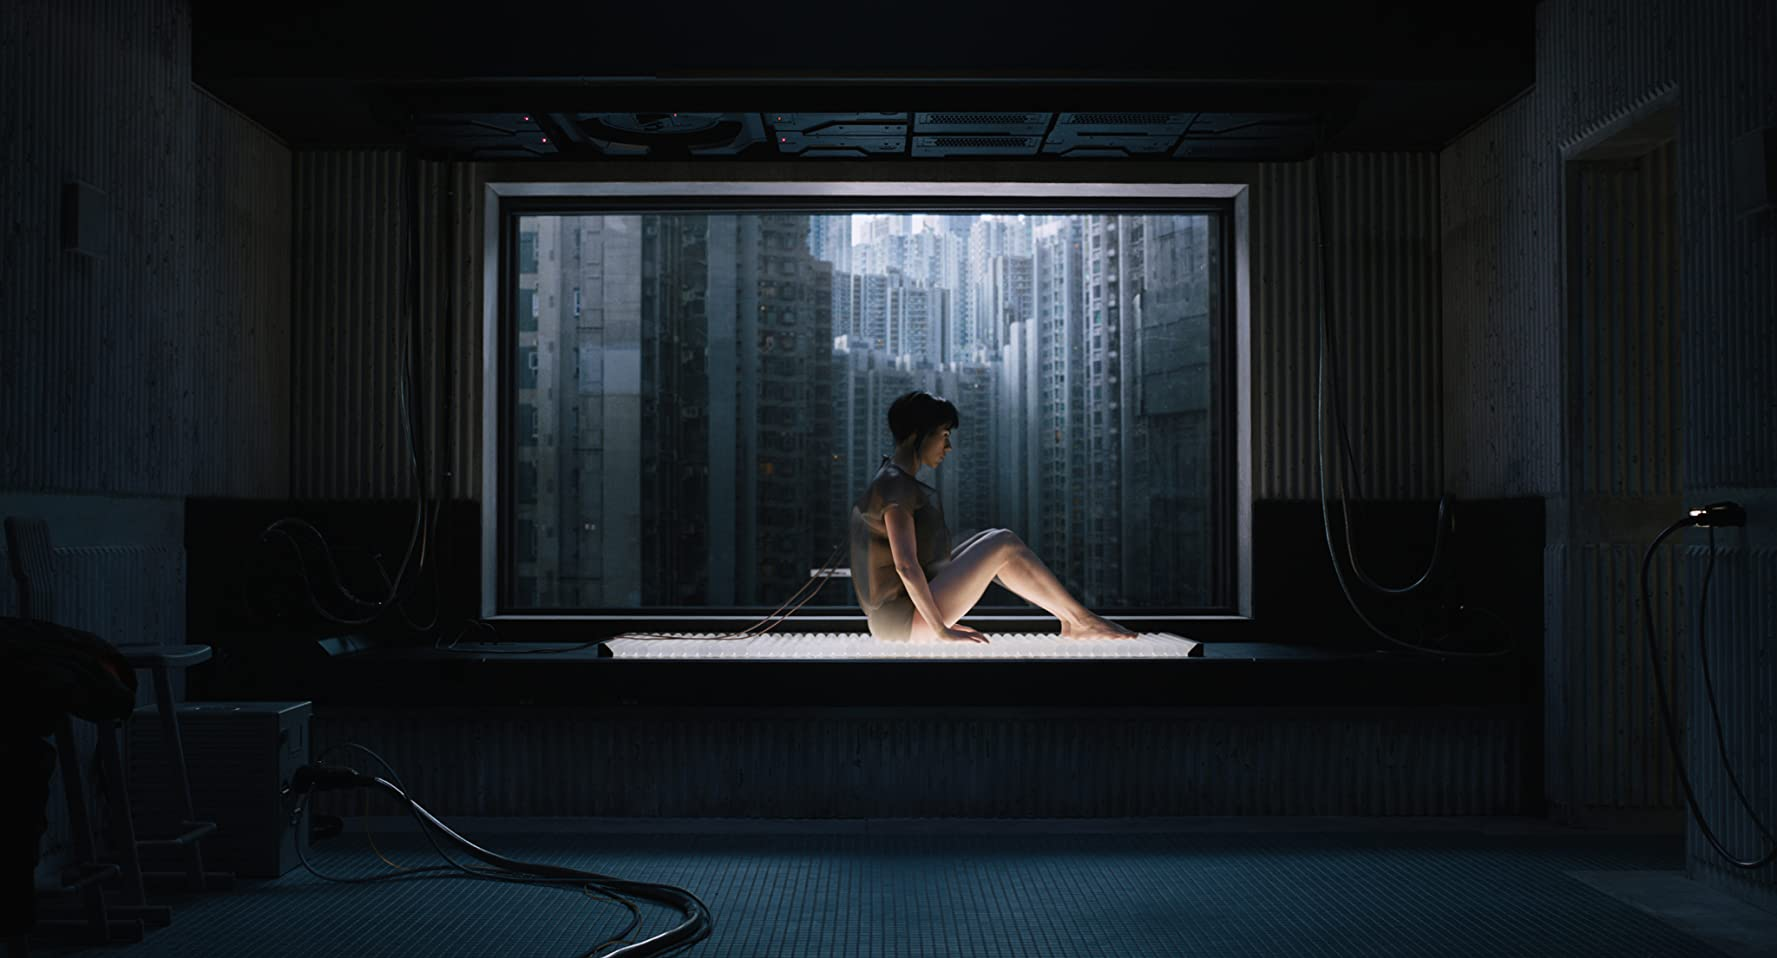 Ghost in the Shell (2017) MV5BNjM1OTM1MDExM15BMl5BanBnXkFtZTgwNjAyMzk1MDI@._V1_SX1777_CR0,0,1777,958_AL_